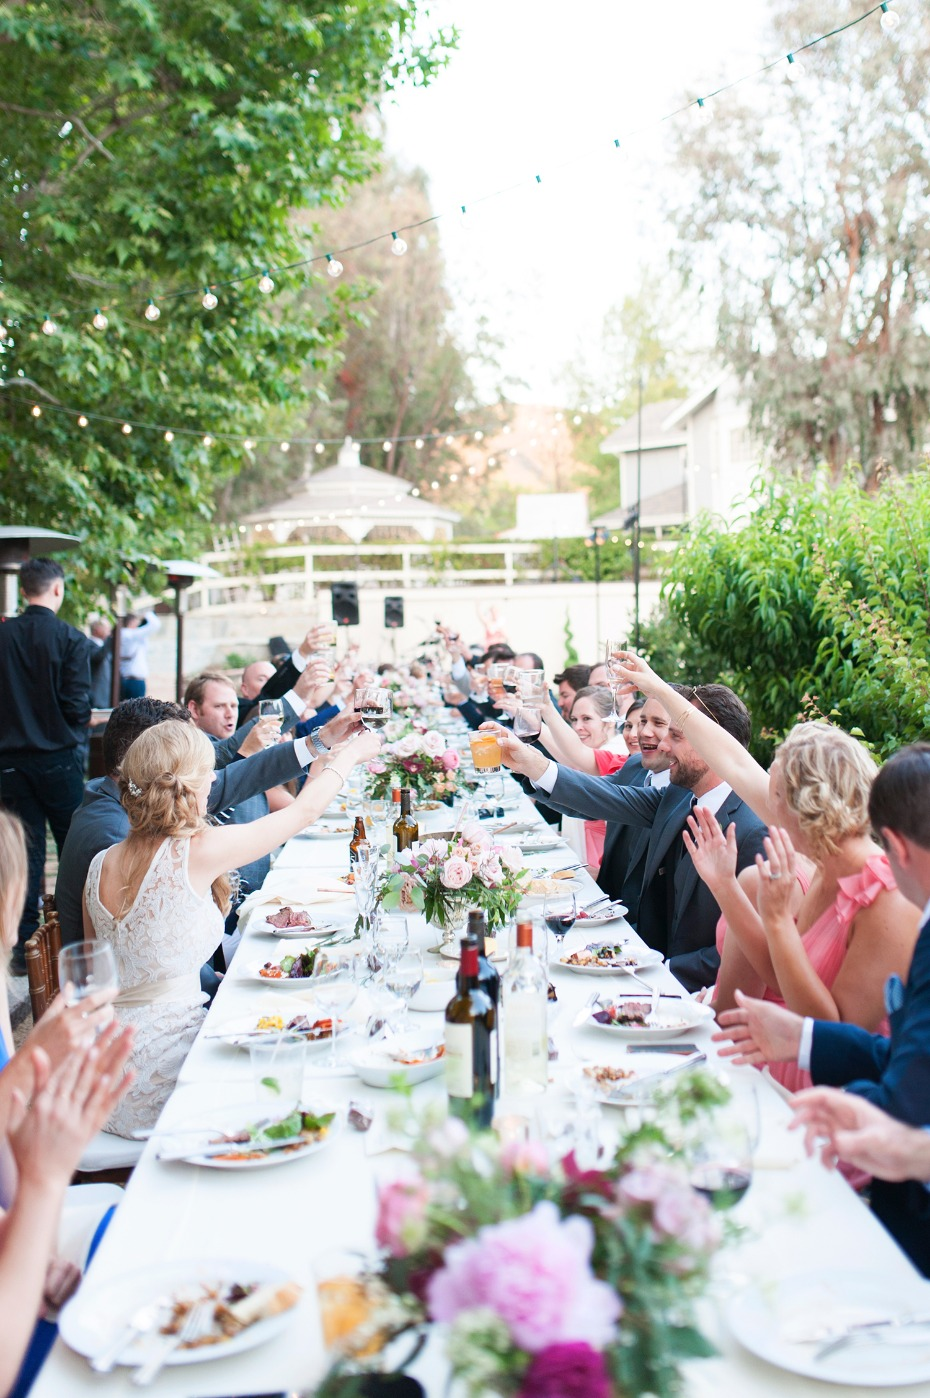 Toast to the newlyweds at this chic garden wedding